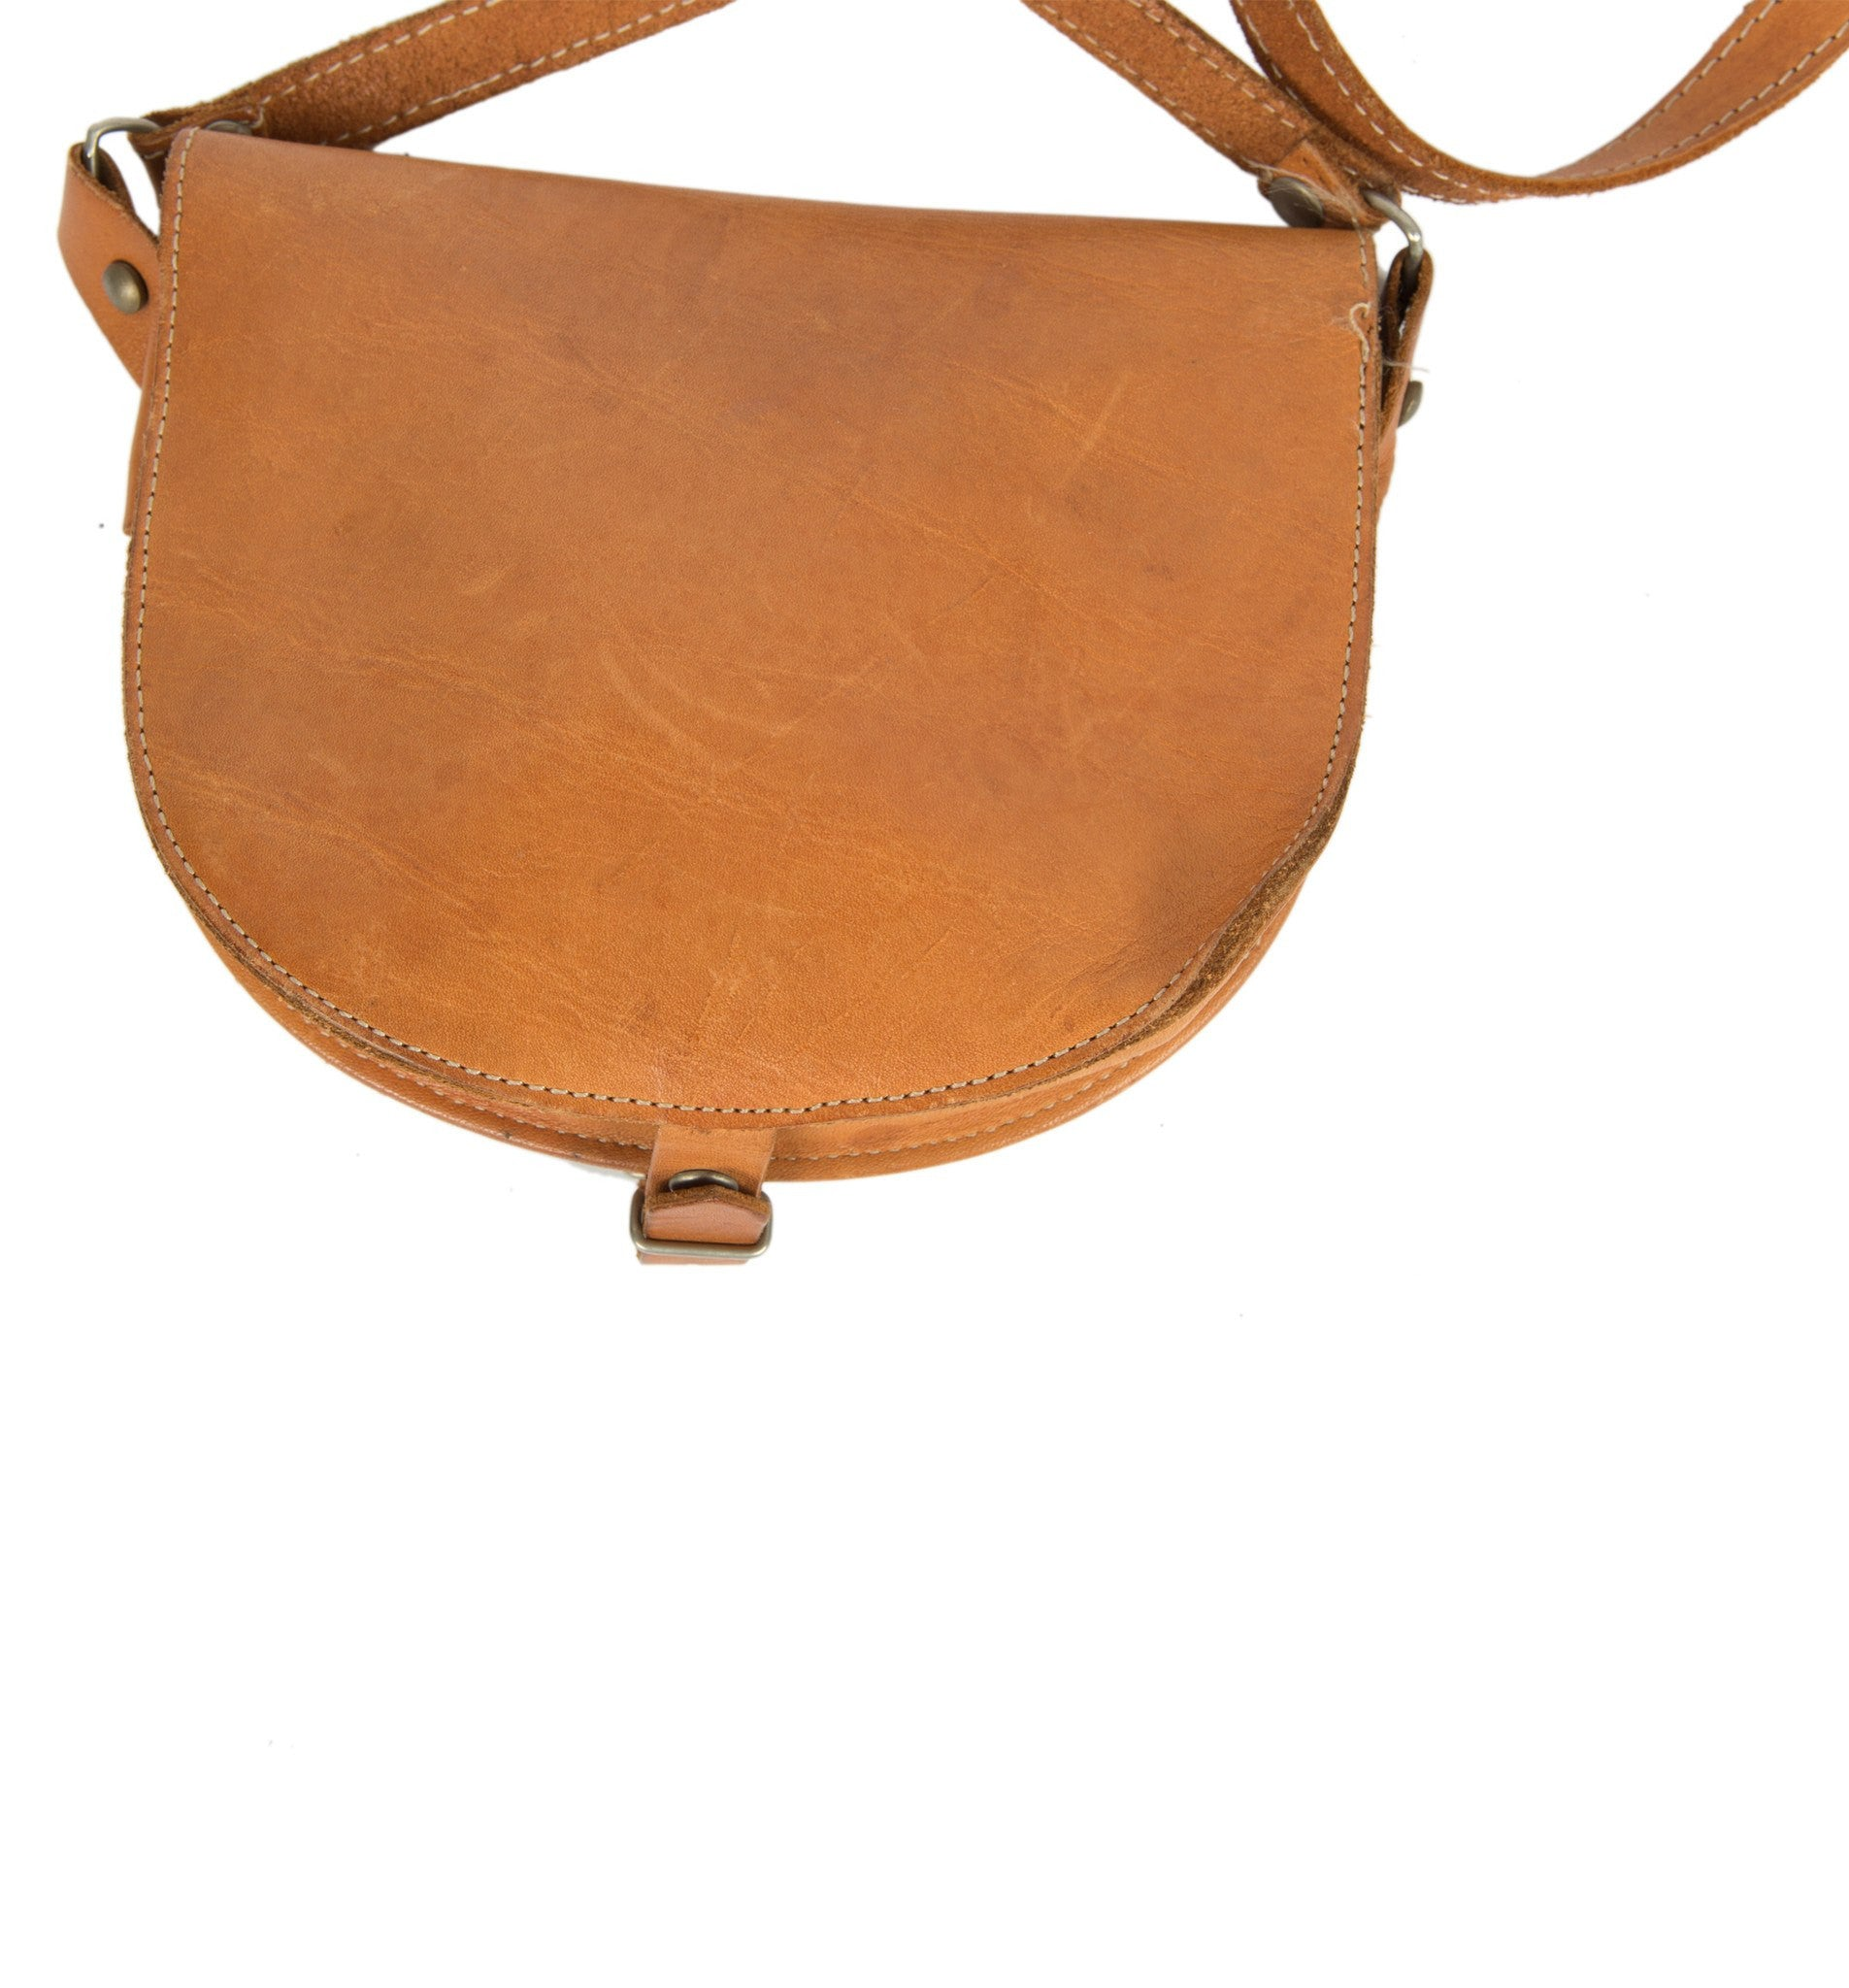 Vintage Small Leather Purse - Vintage: Women's - Iron and Resin